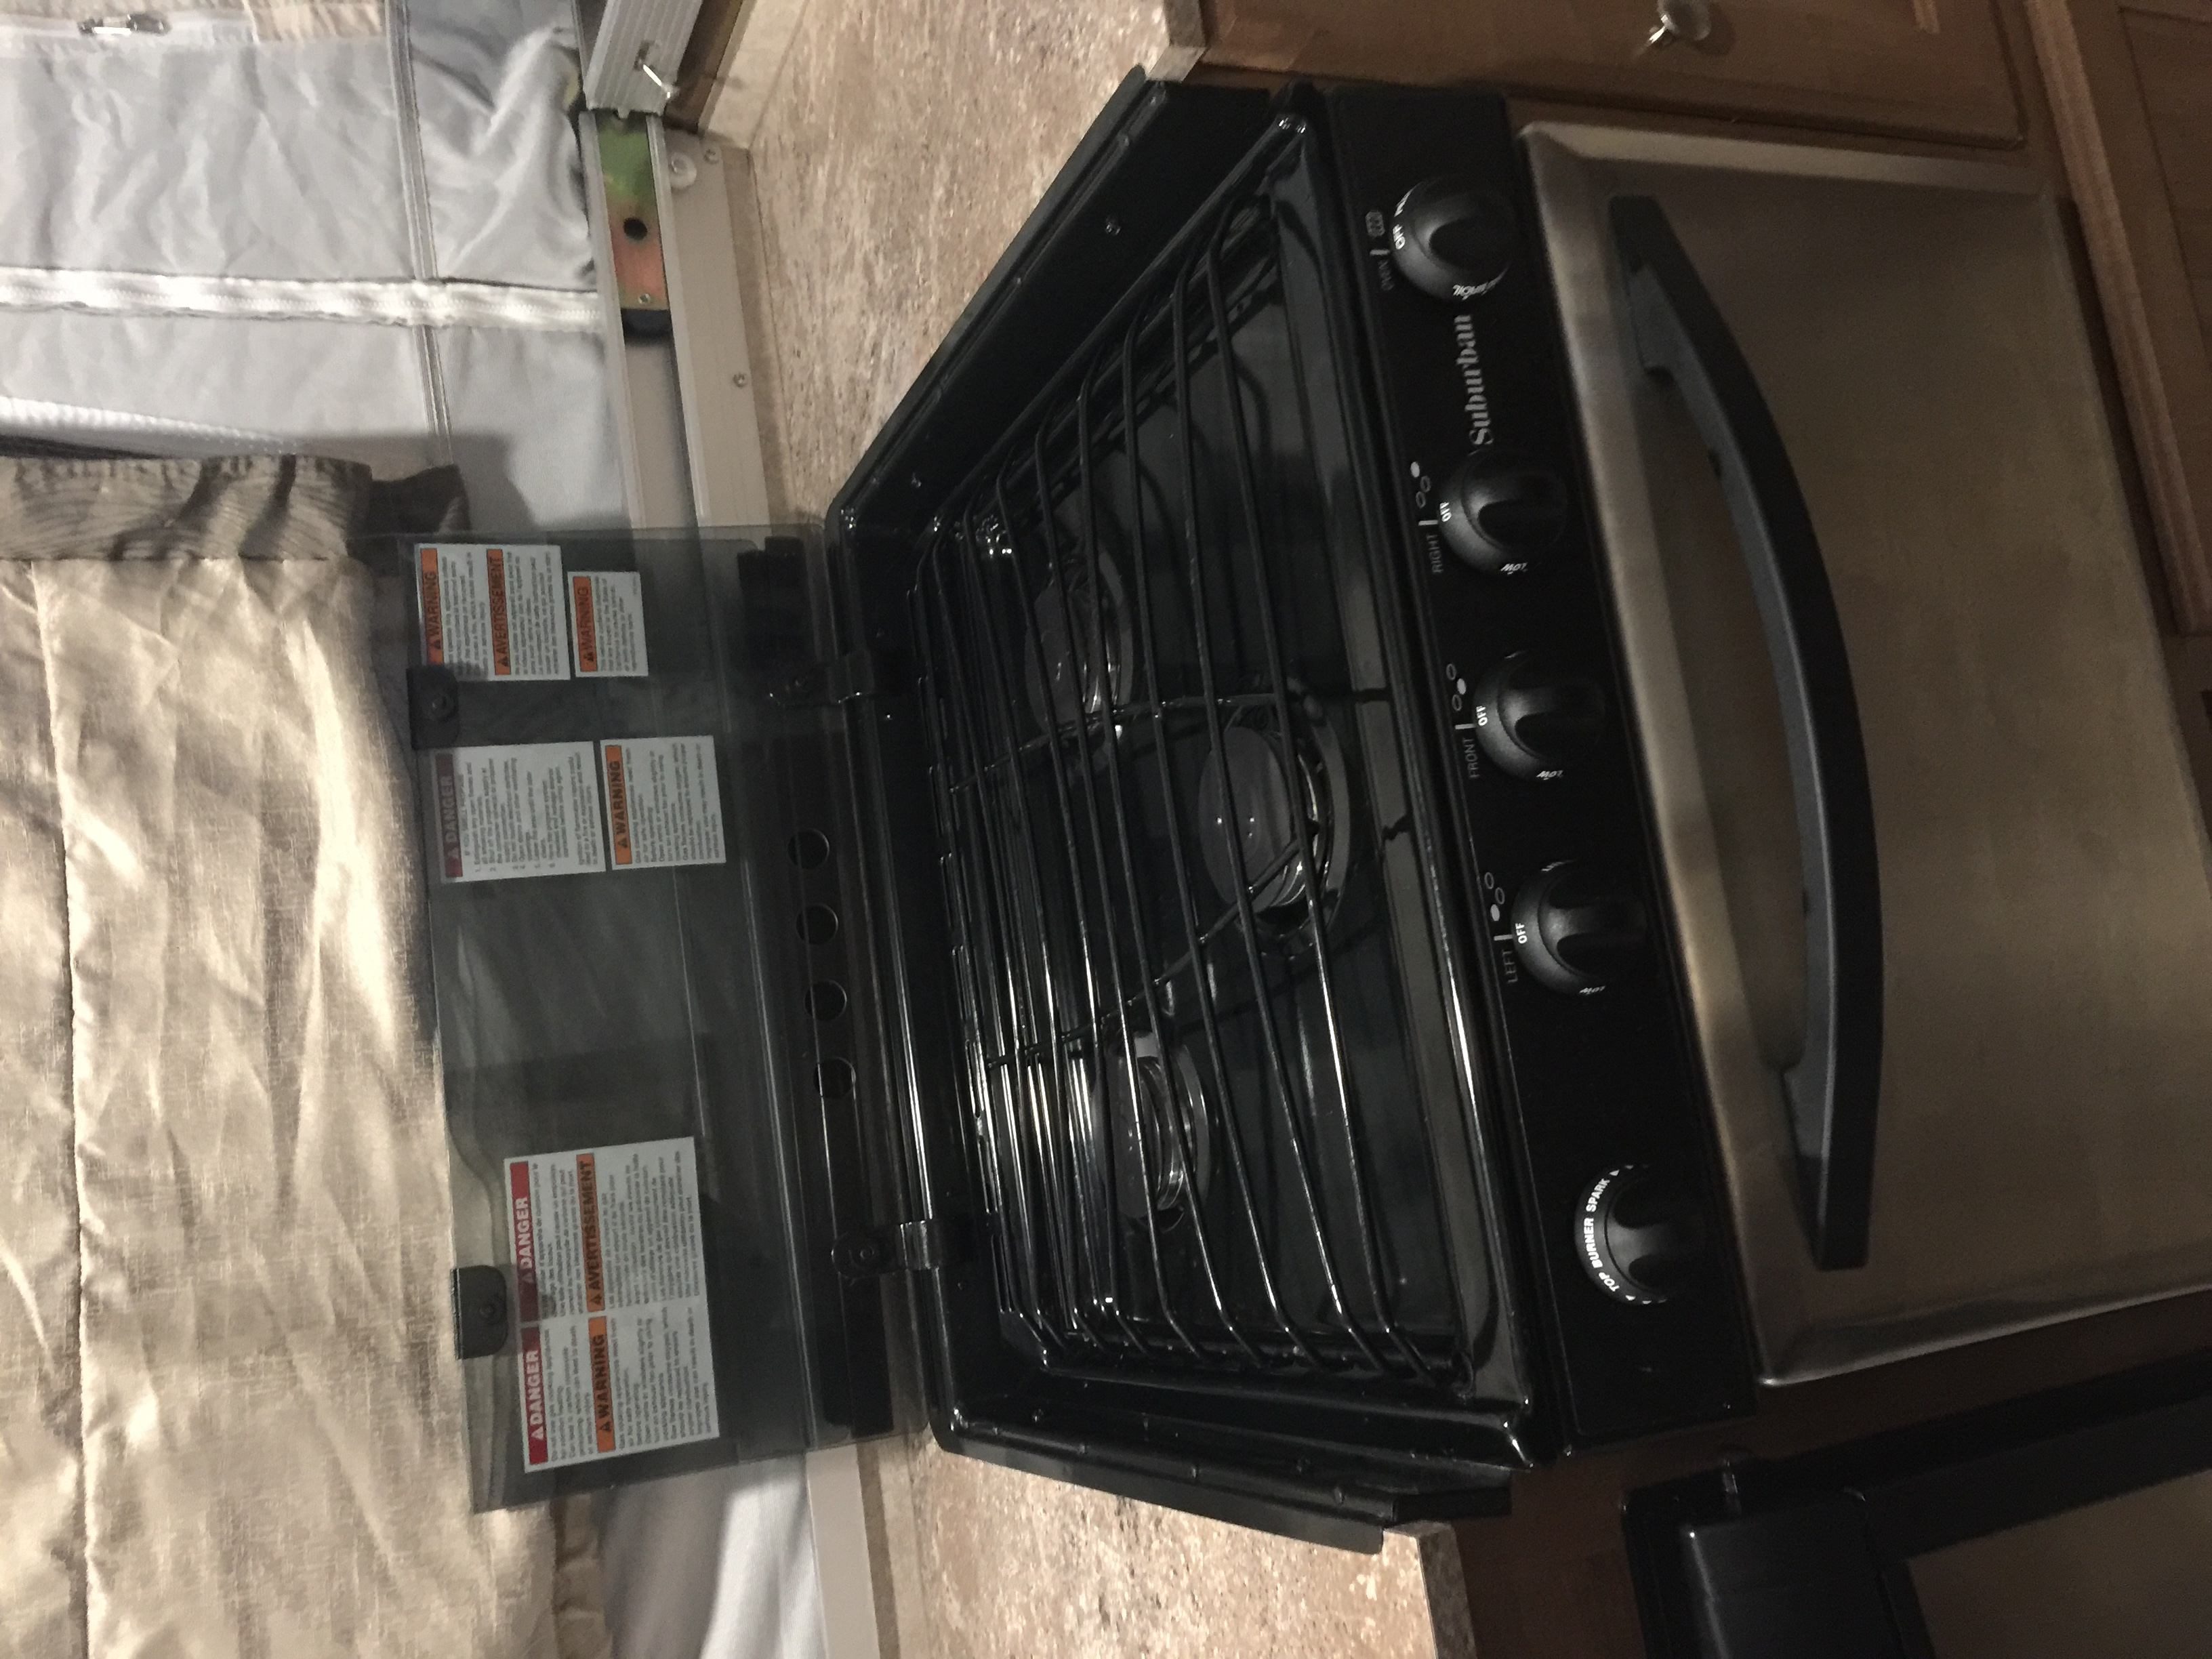 3 burner stove. Flagstaff High Wall pop up 2017